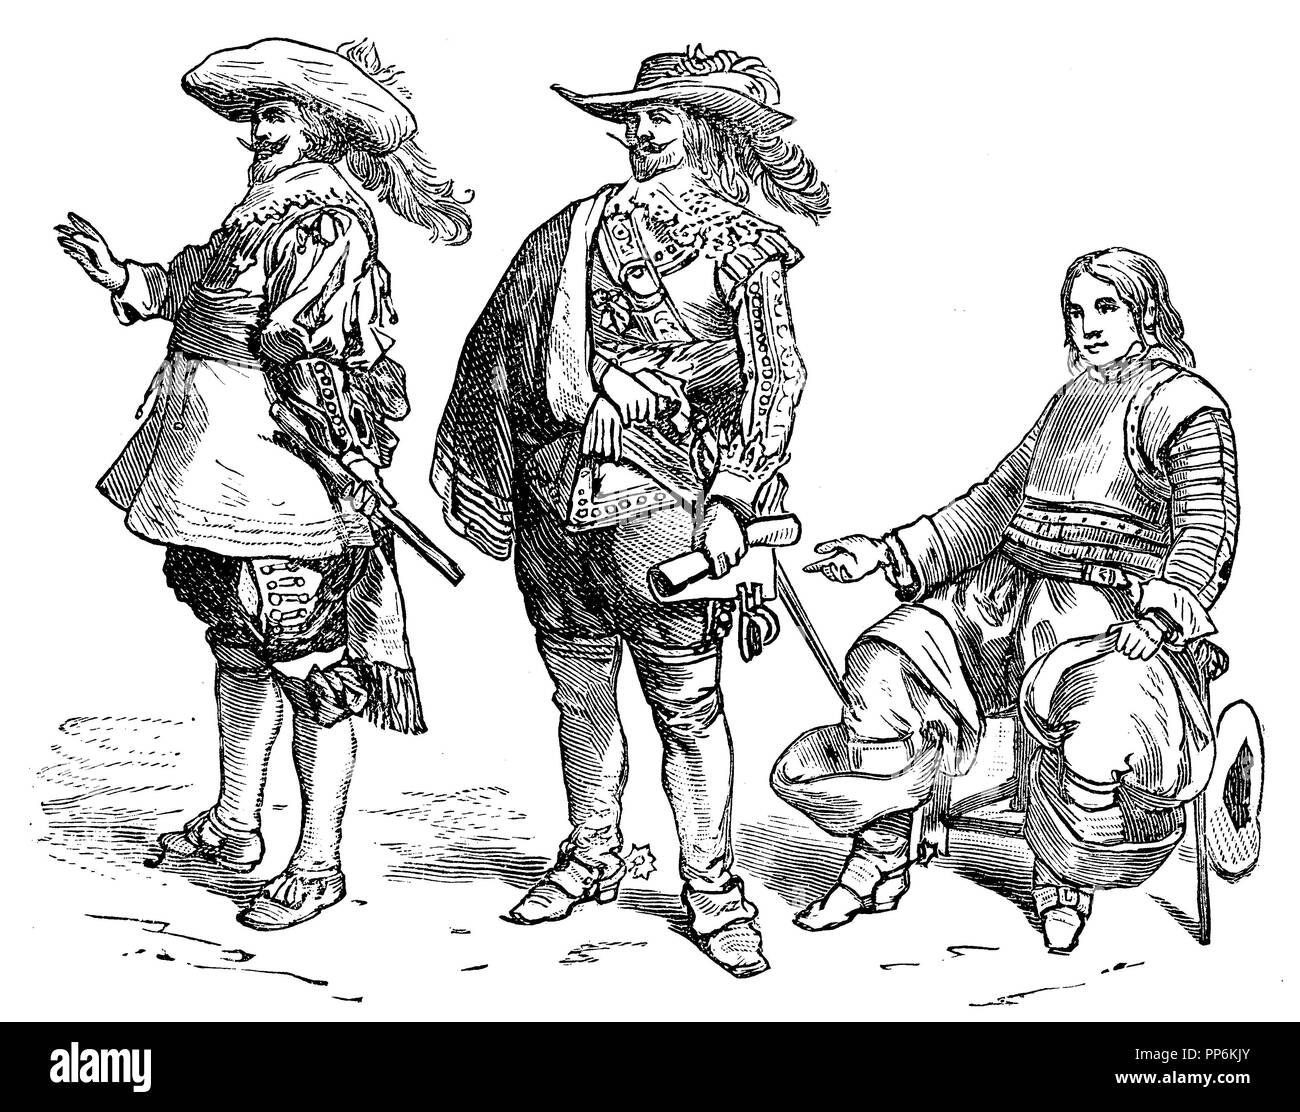 War costume of modern times, left: Flemings 1640-1650, center: nobleman 1625-1640, right: Dutch officer around 1650, anonym  1896 - Stock Image